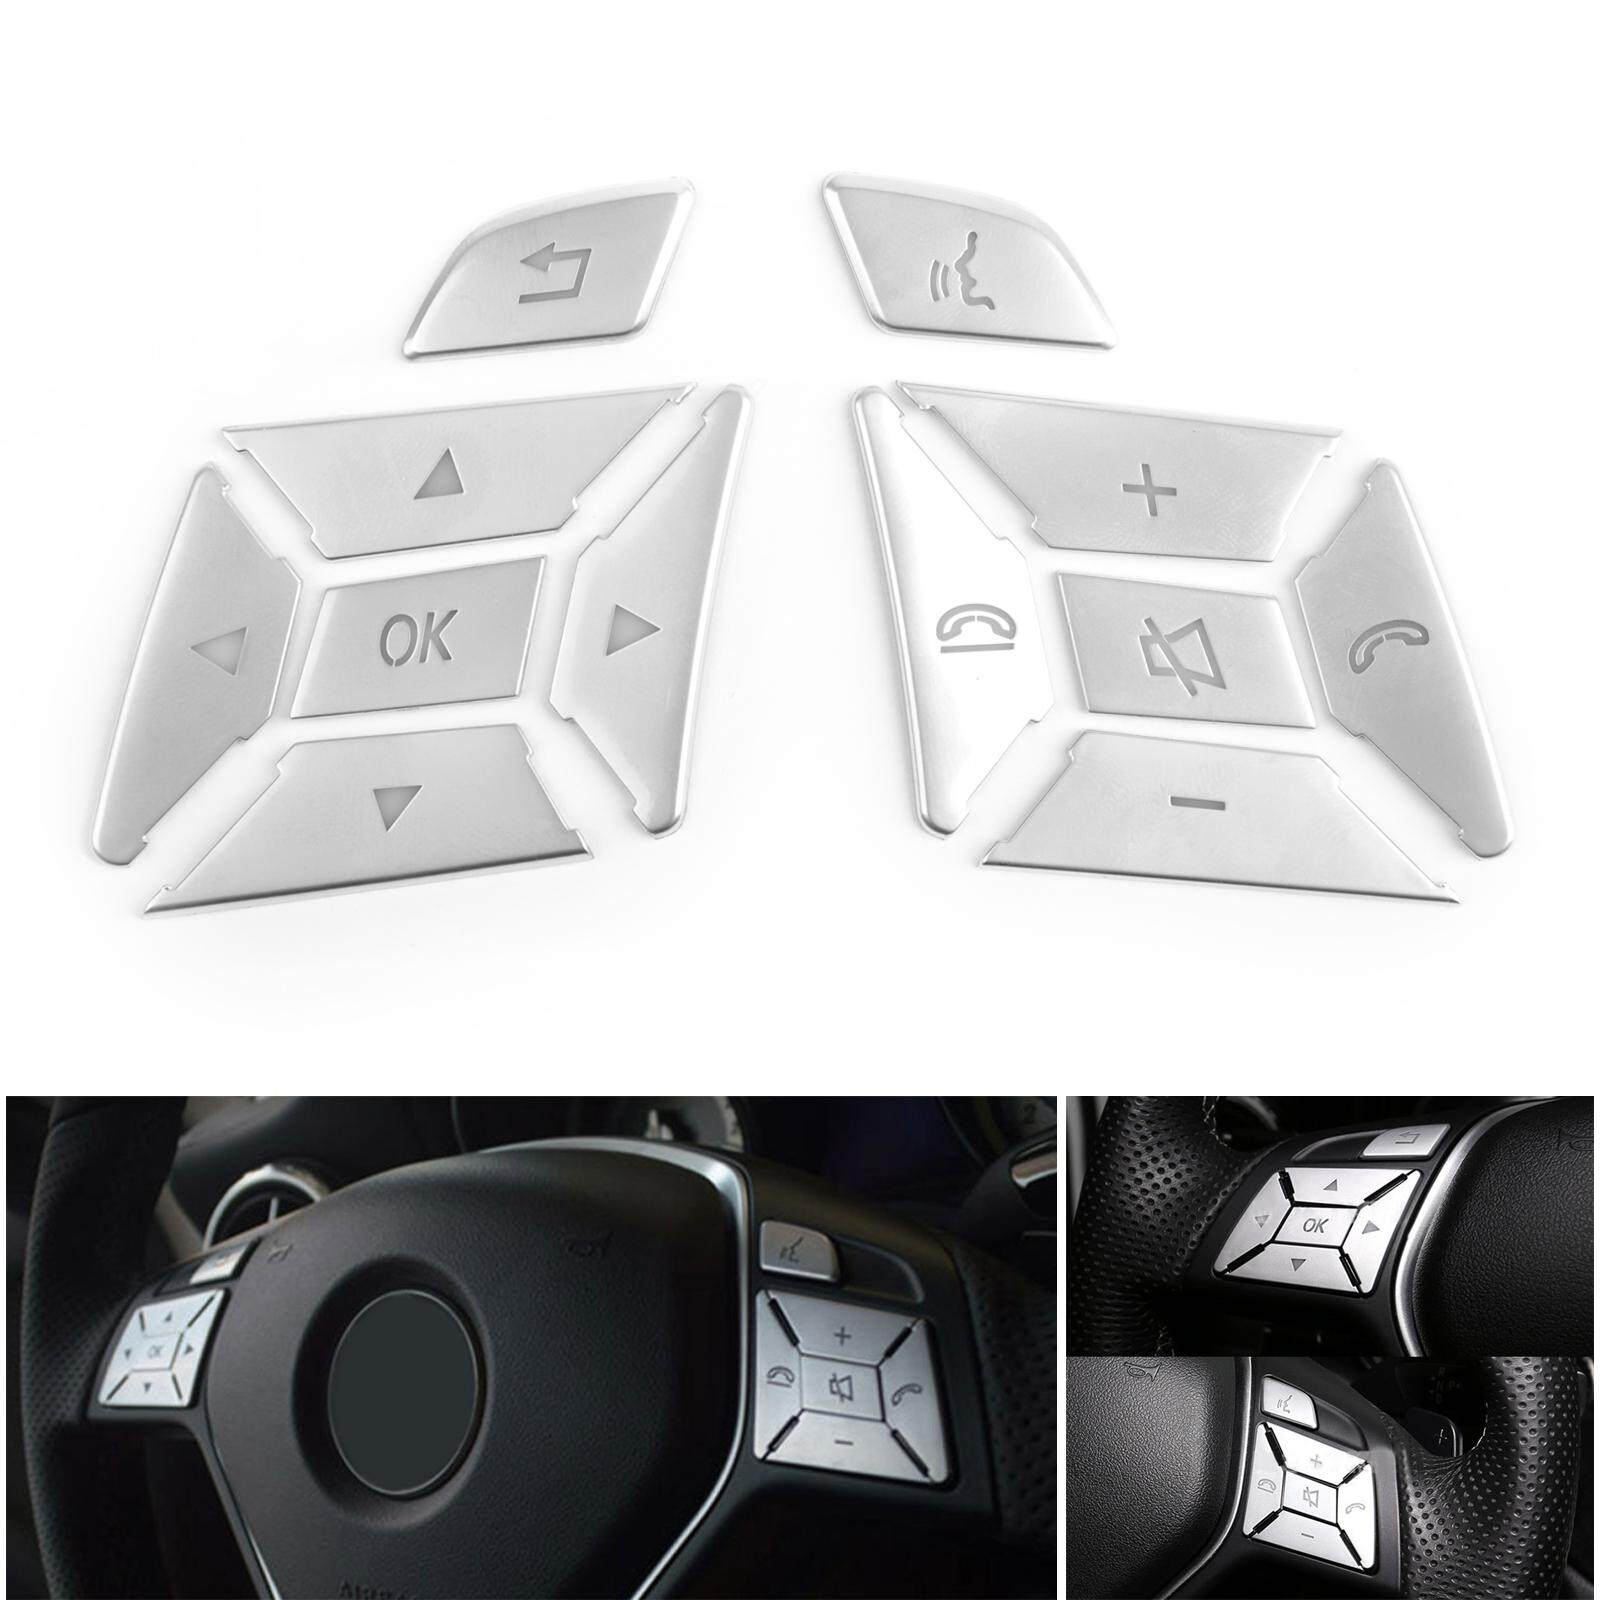 Areyourshop Steering Wheel Button Silver Trim For Mercedes Benz E C G Class W204 2012-2016 By Areyourshop.